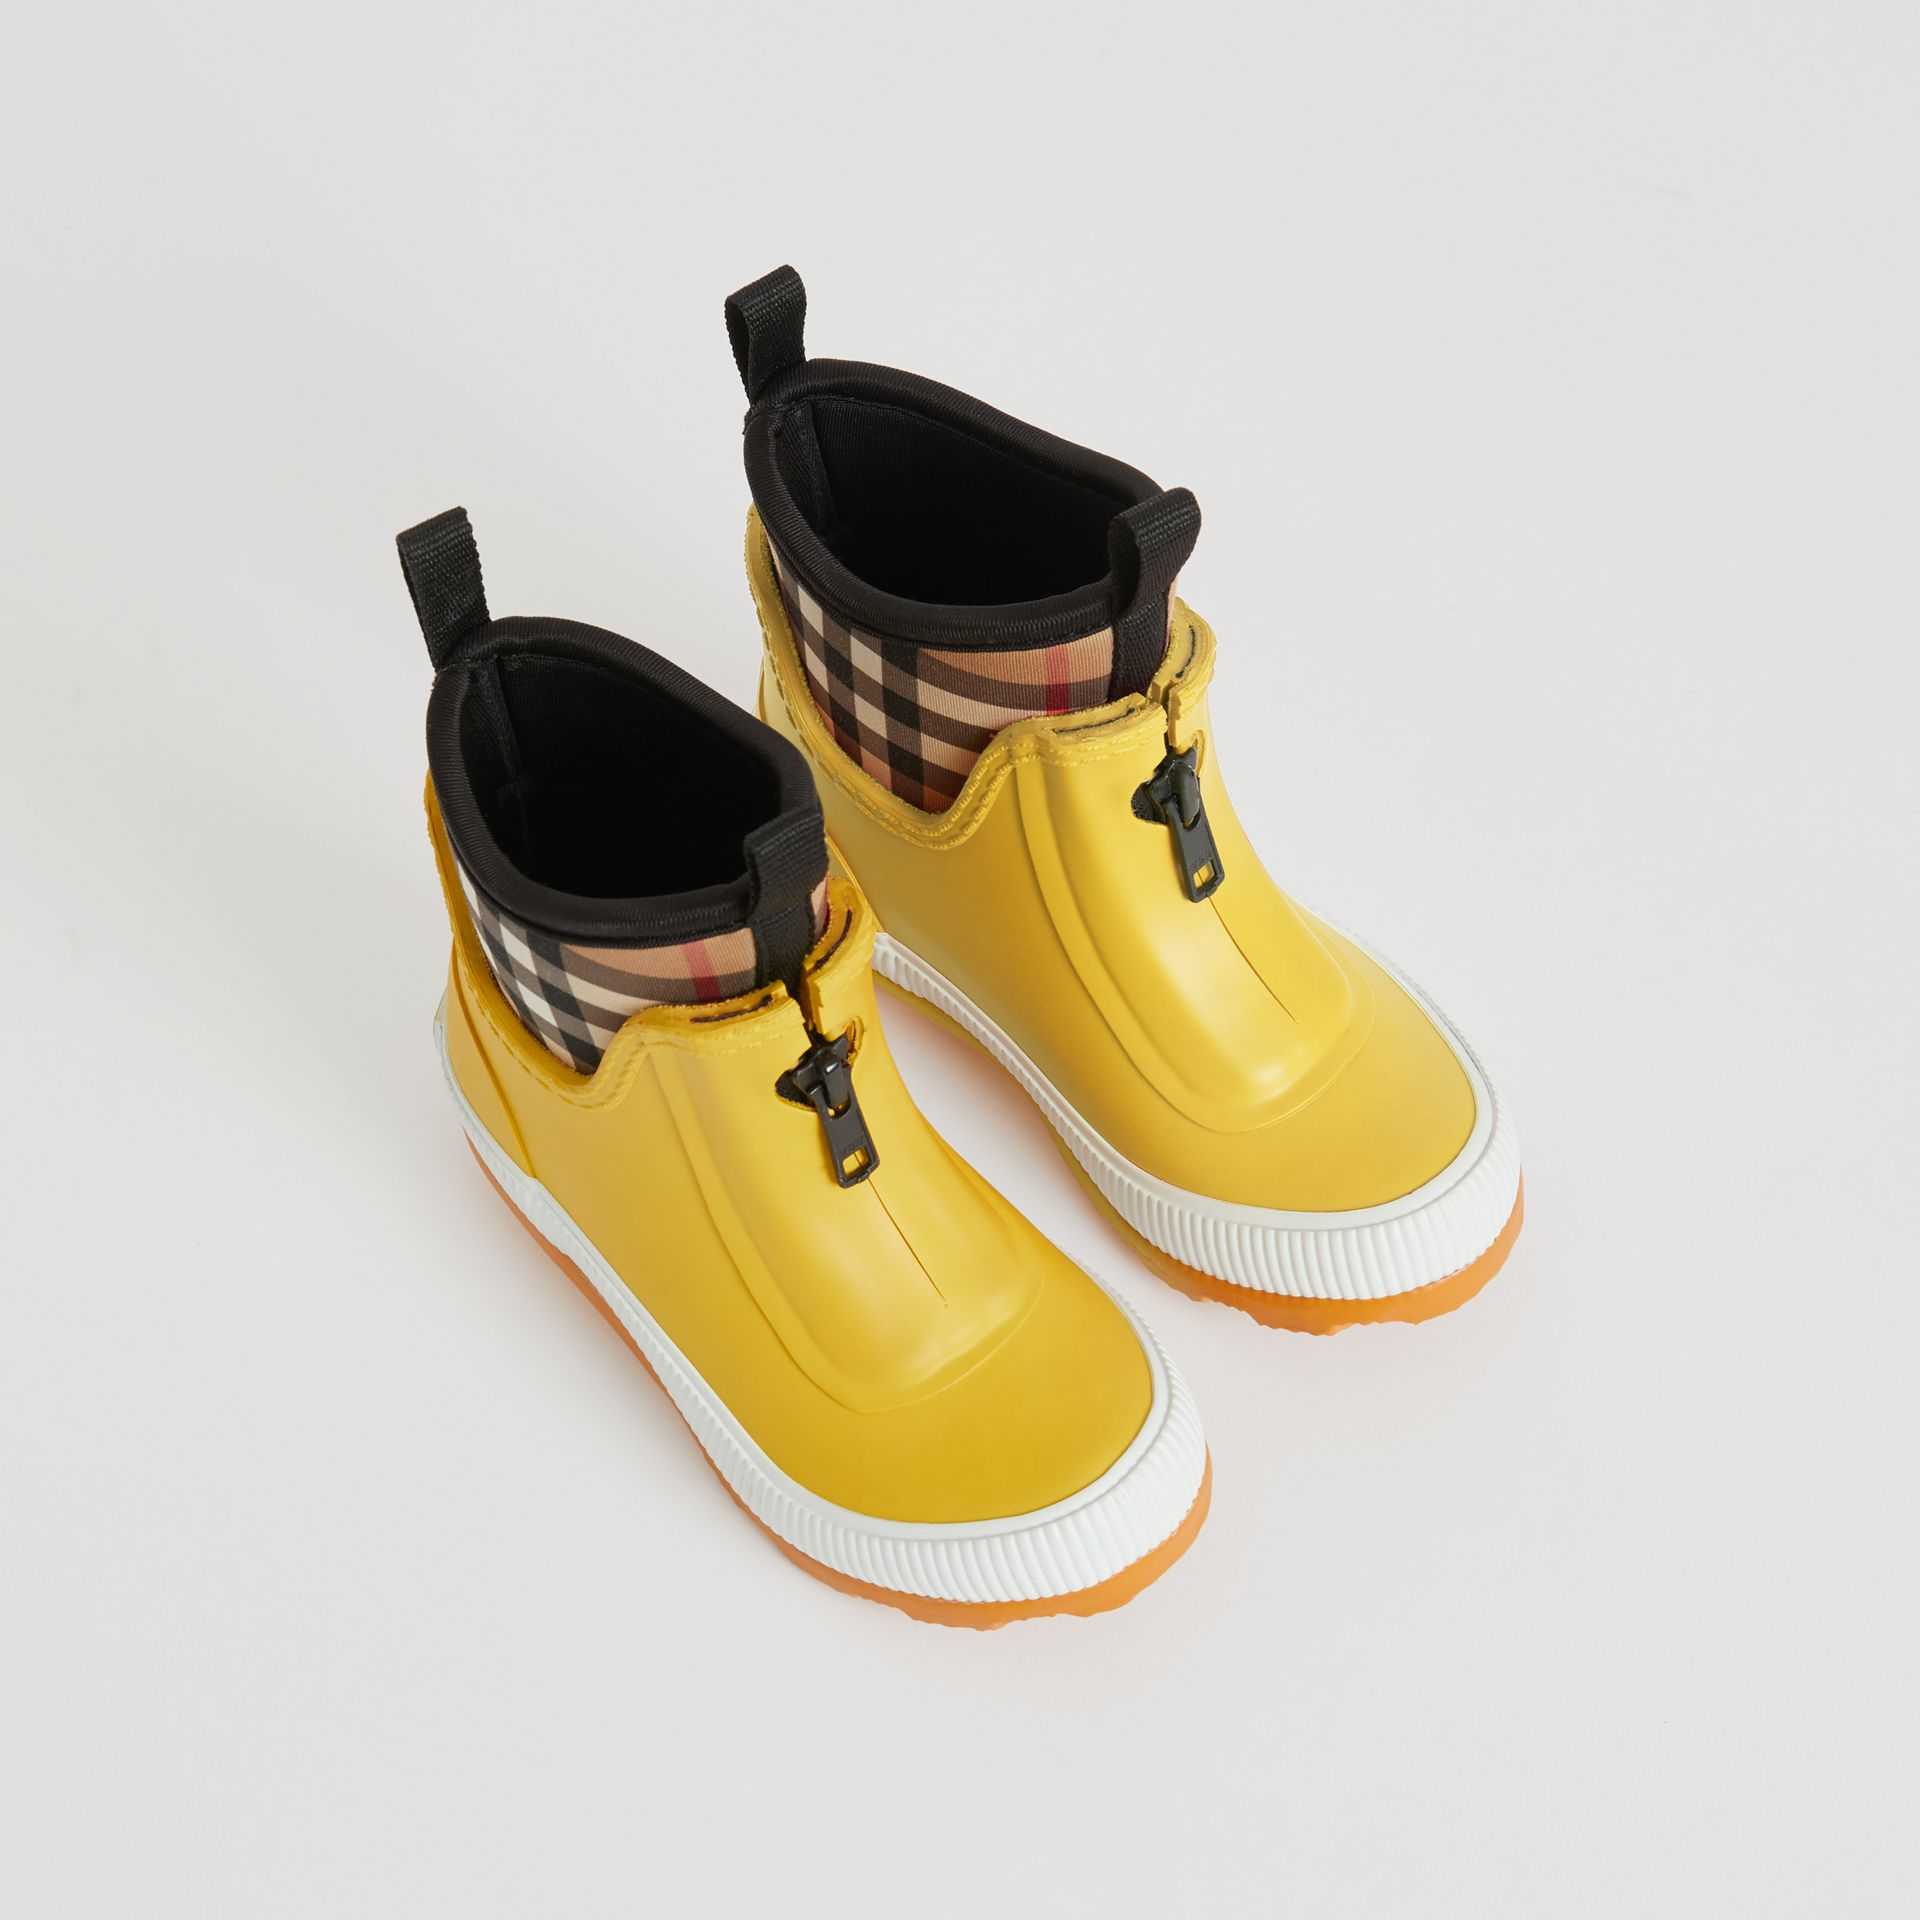 Vintage Check Neoprene and Rubber Rain Boots in Vibrant Lemon | Burberry United Kingdom - gallery image 0